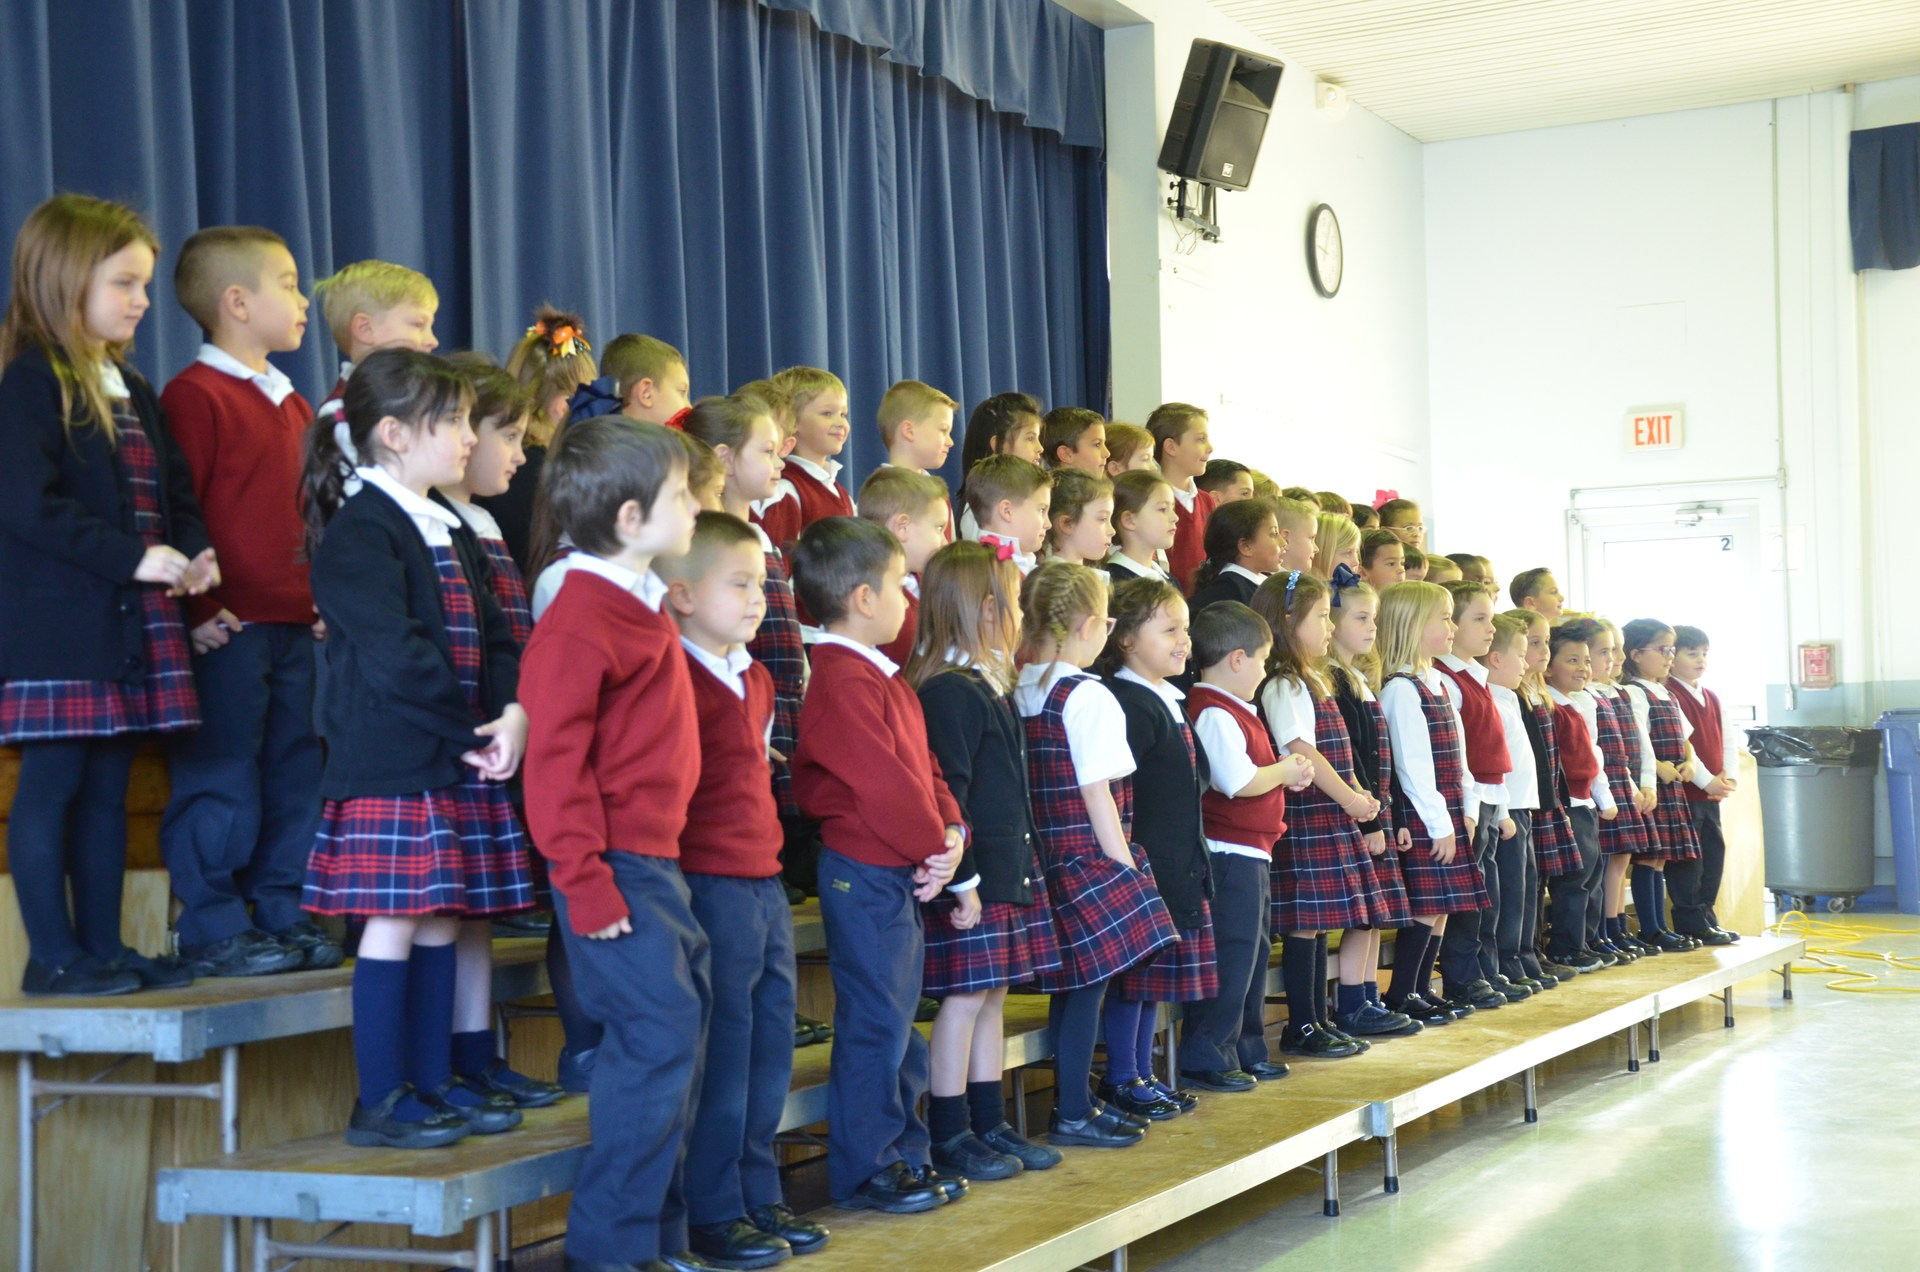 Students get ready to sing another song at concert